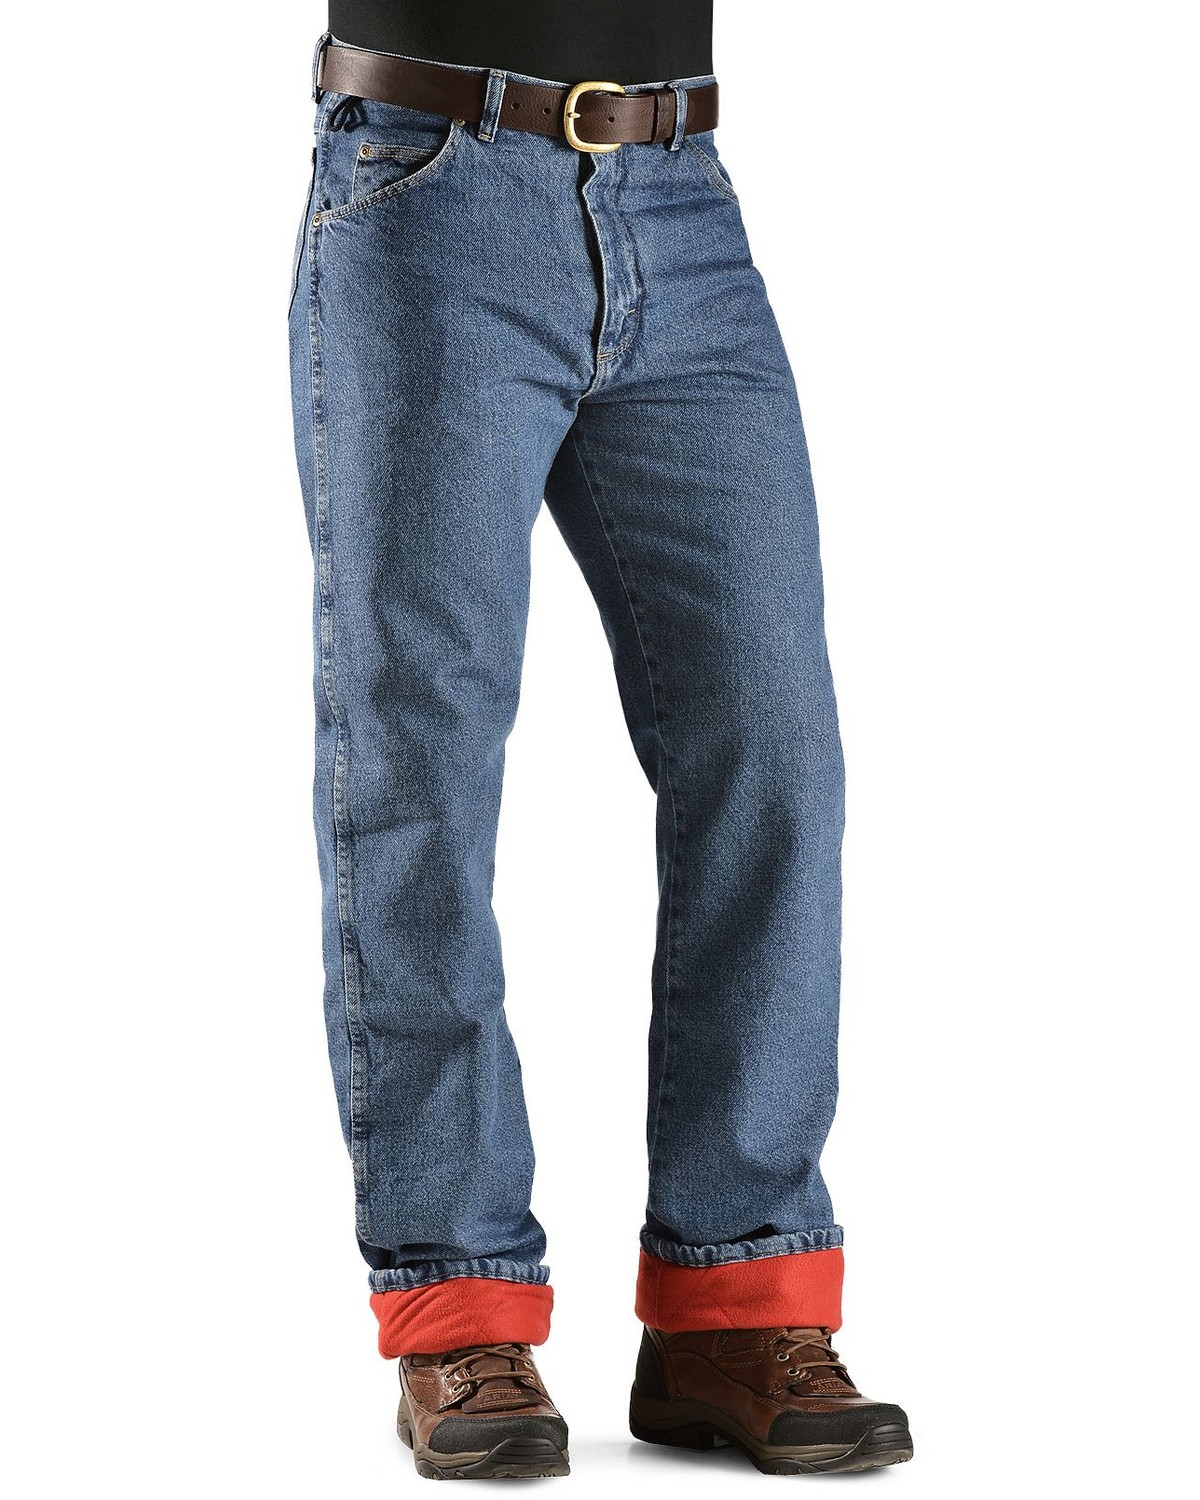 Wrangler Jeans Rugged Wear Relaxed Fit Flannel Lined